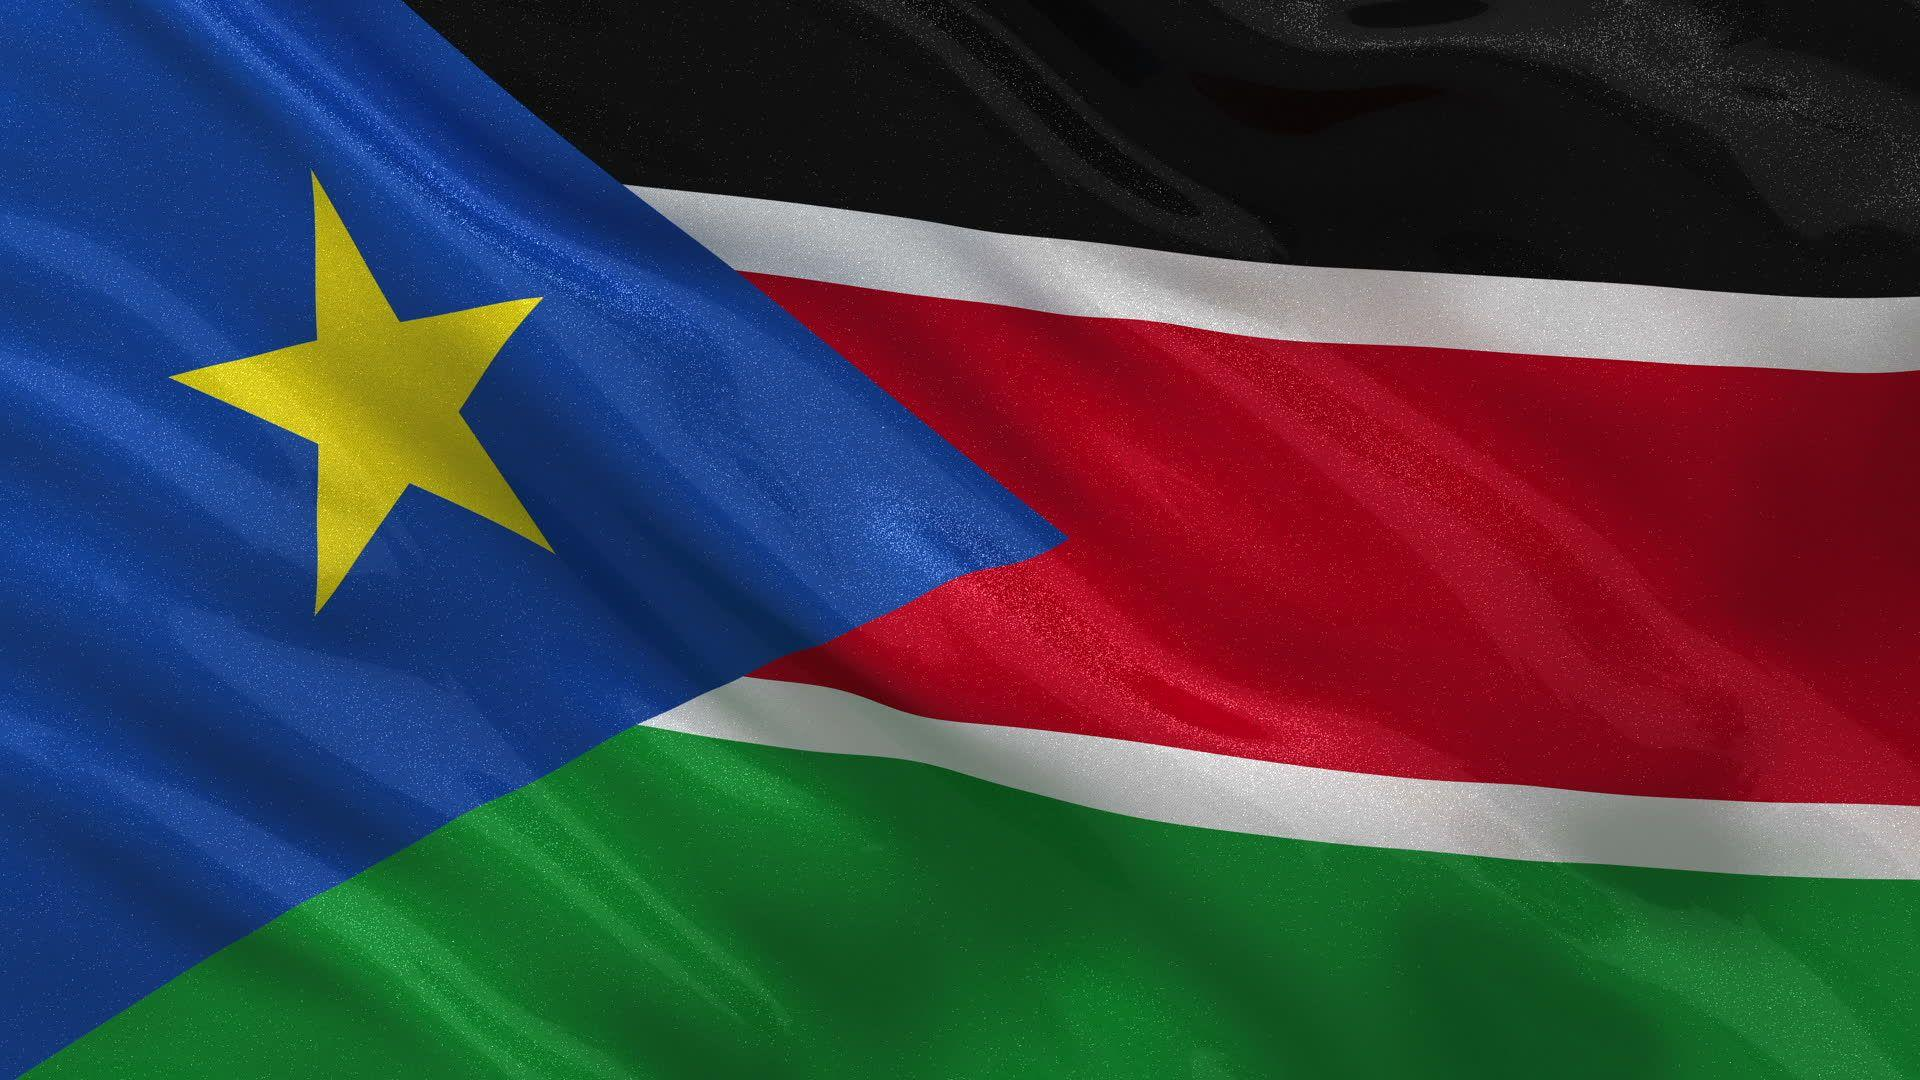 South Sudan Flag - Wallpaper, High Definition, High Quality, Widescreen